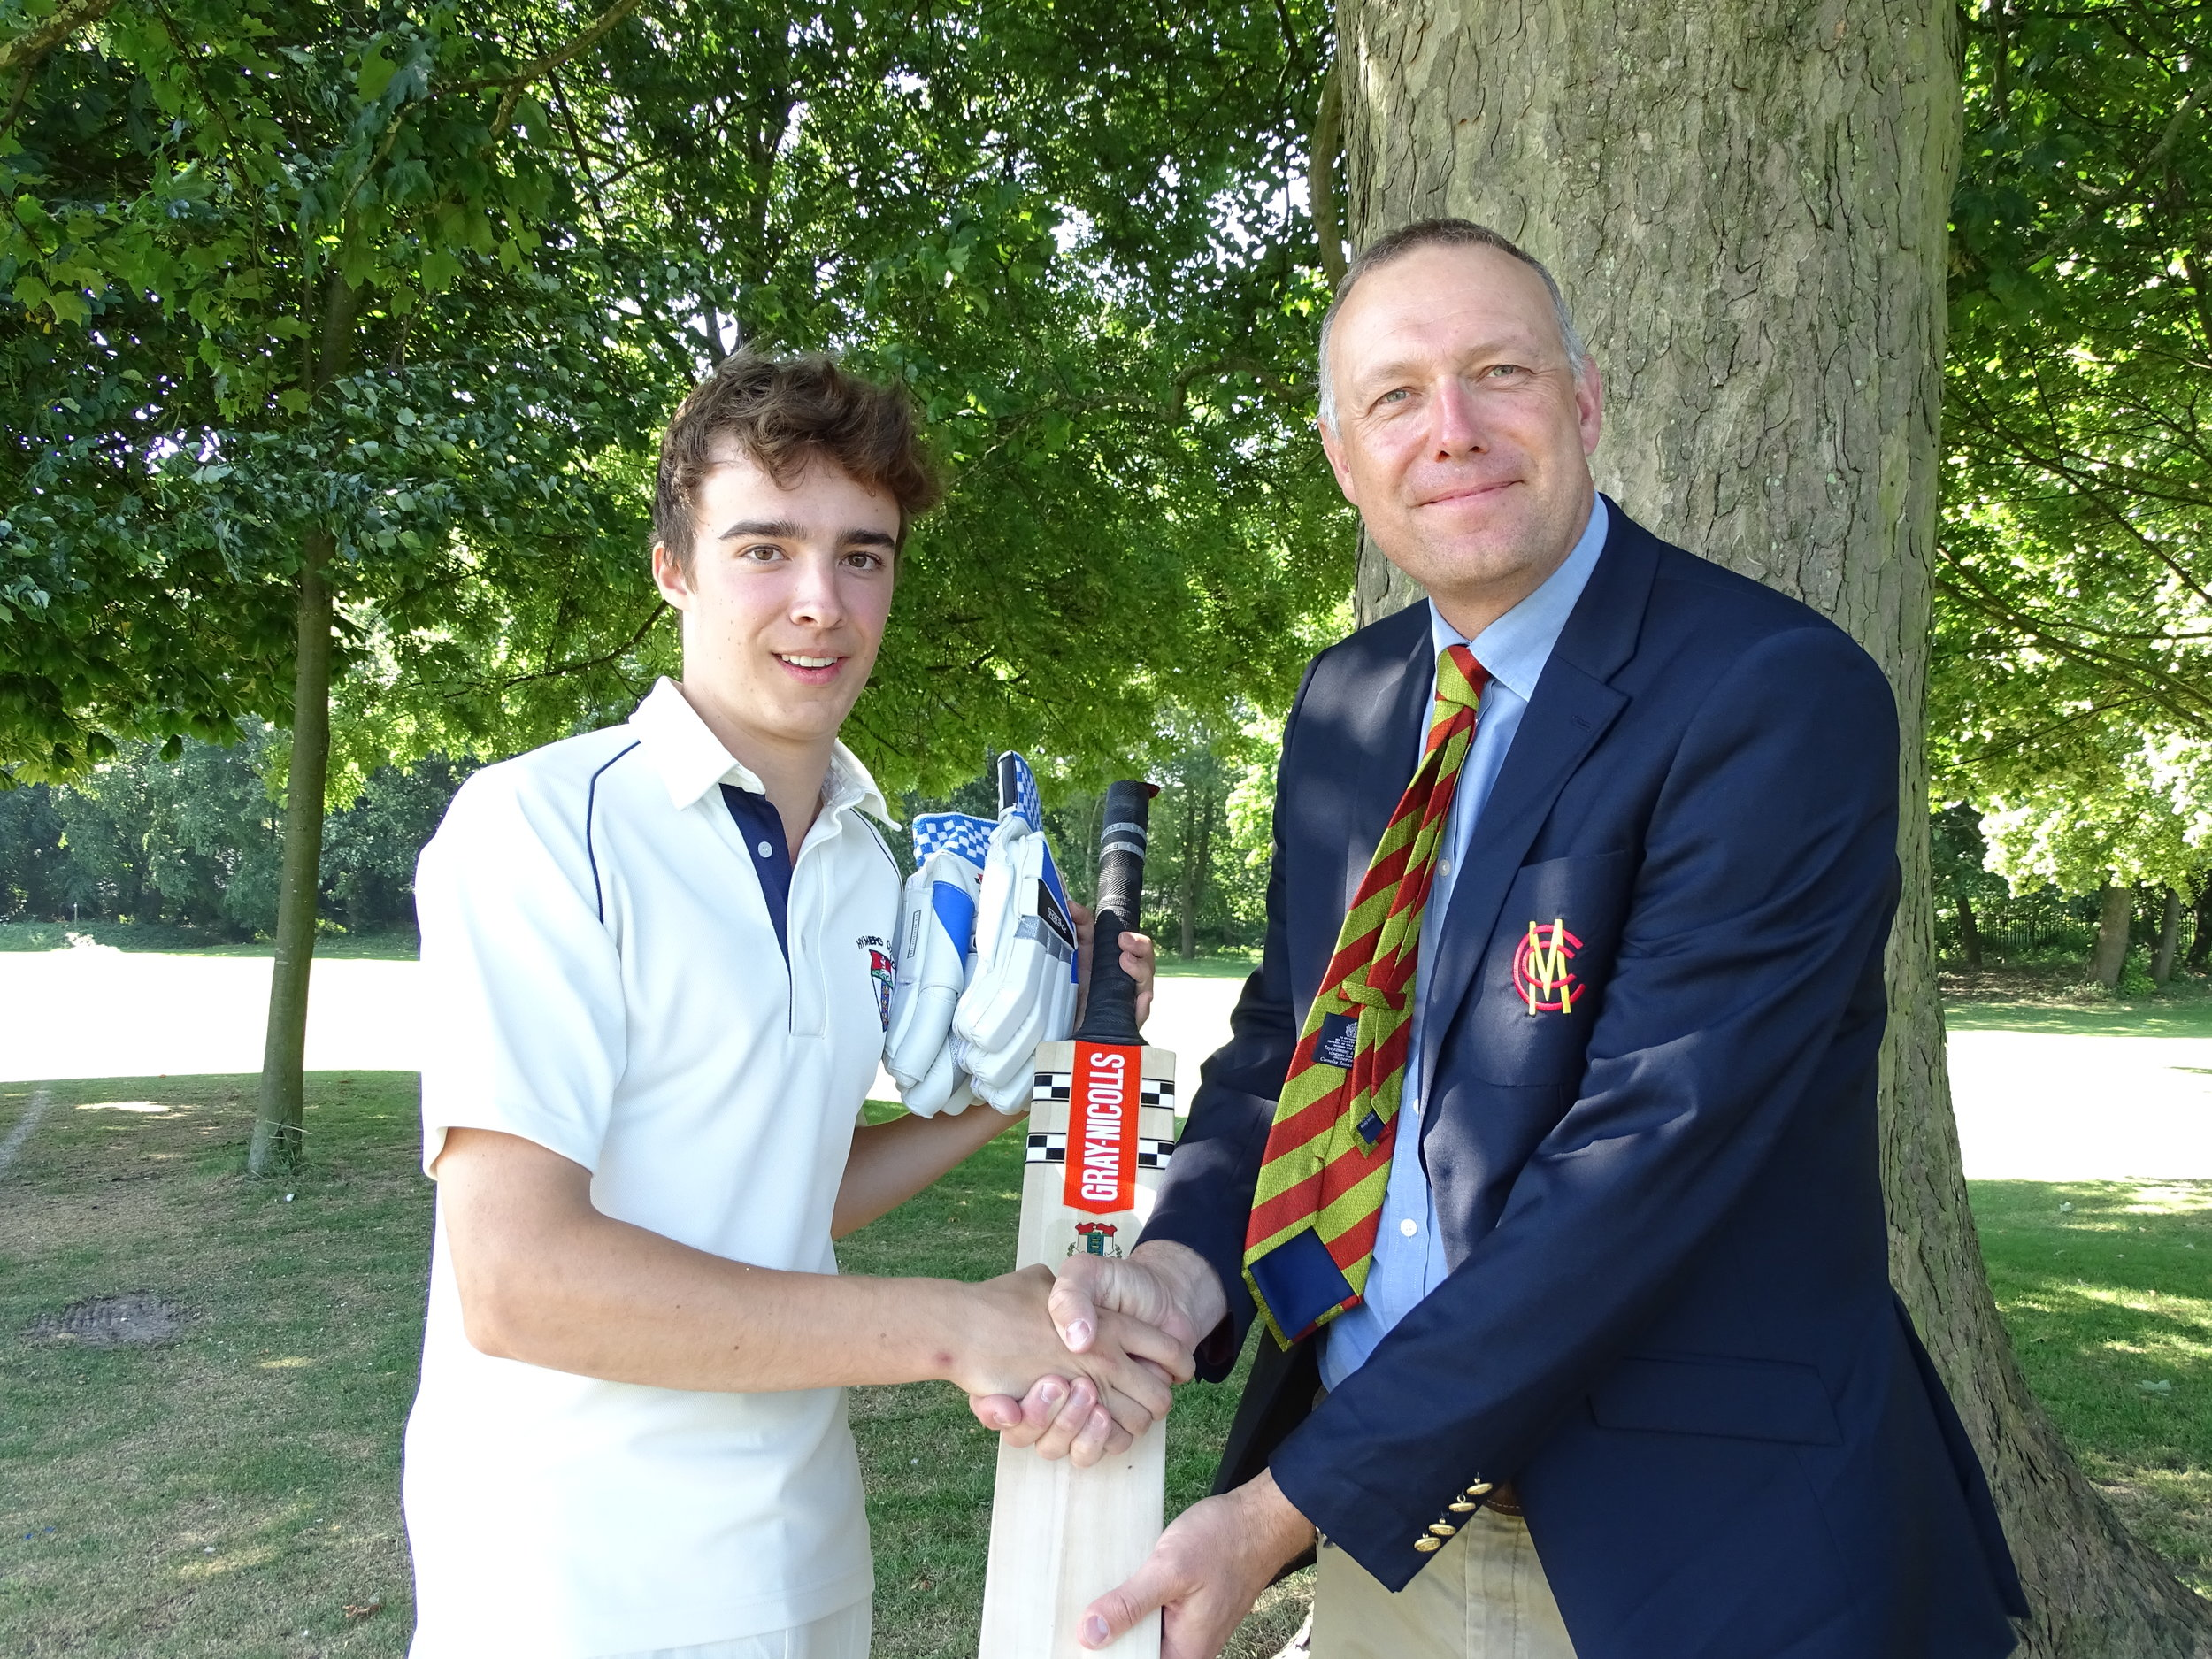 Henry receives his commemorative bat and gloves